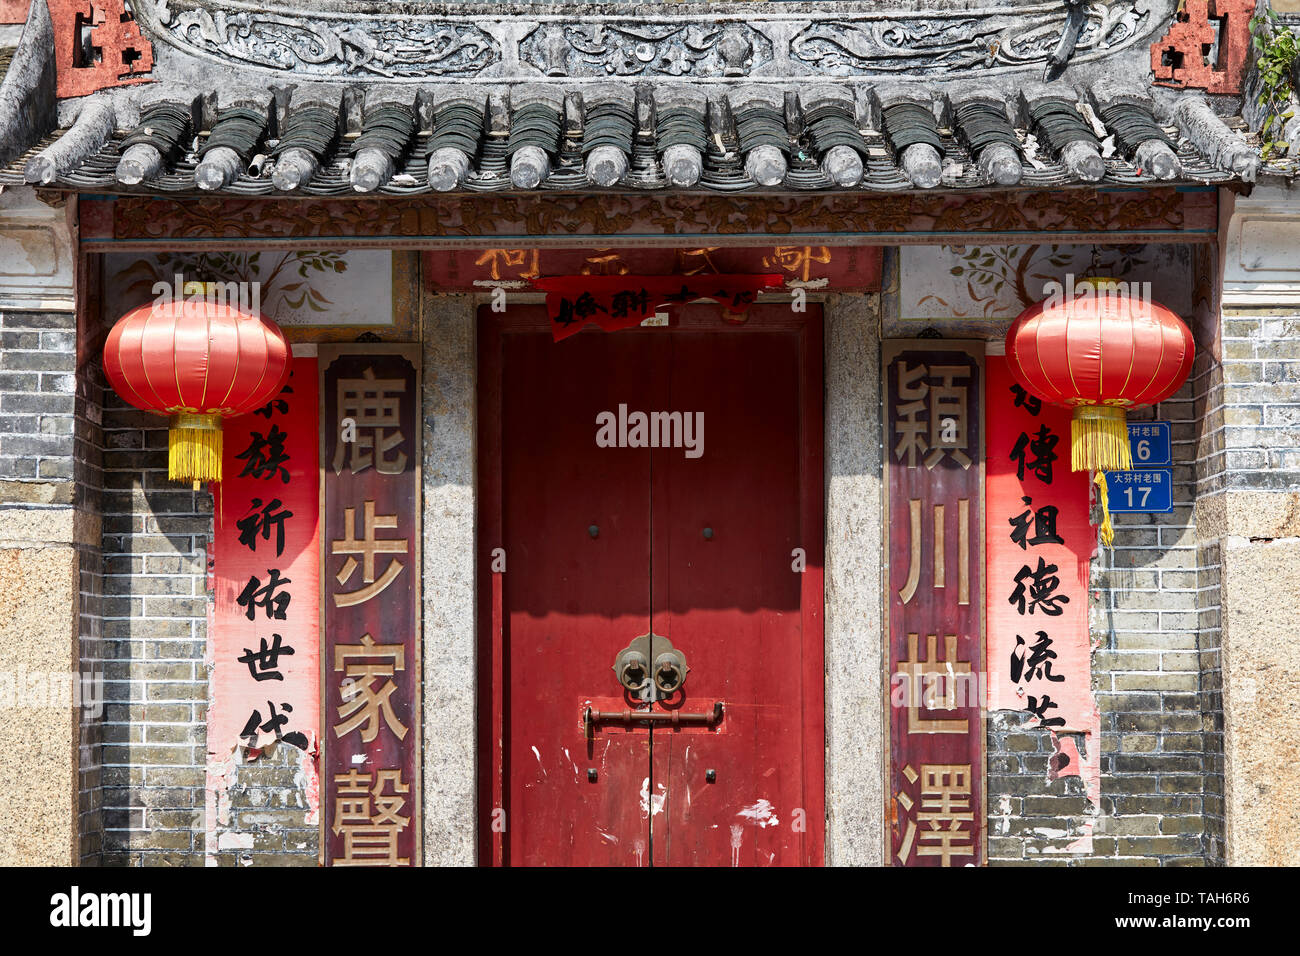 Old entrance door with red lanterns in Dafen Oil Painting Village. Shenzhen, Guangdong Province, China. Stock Photo